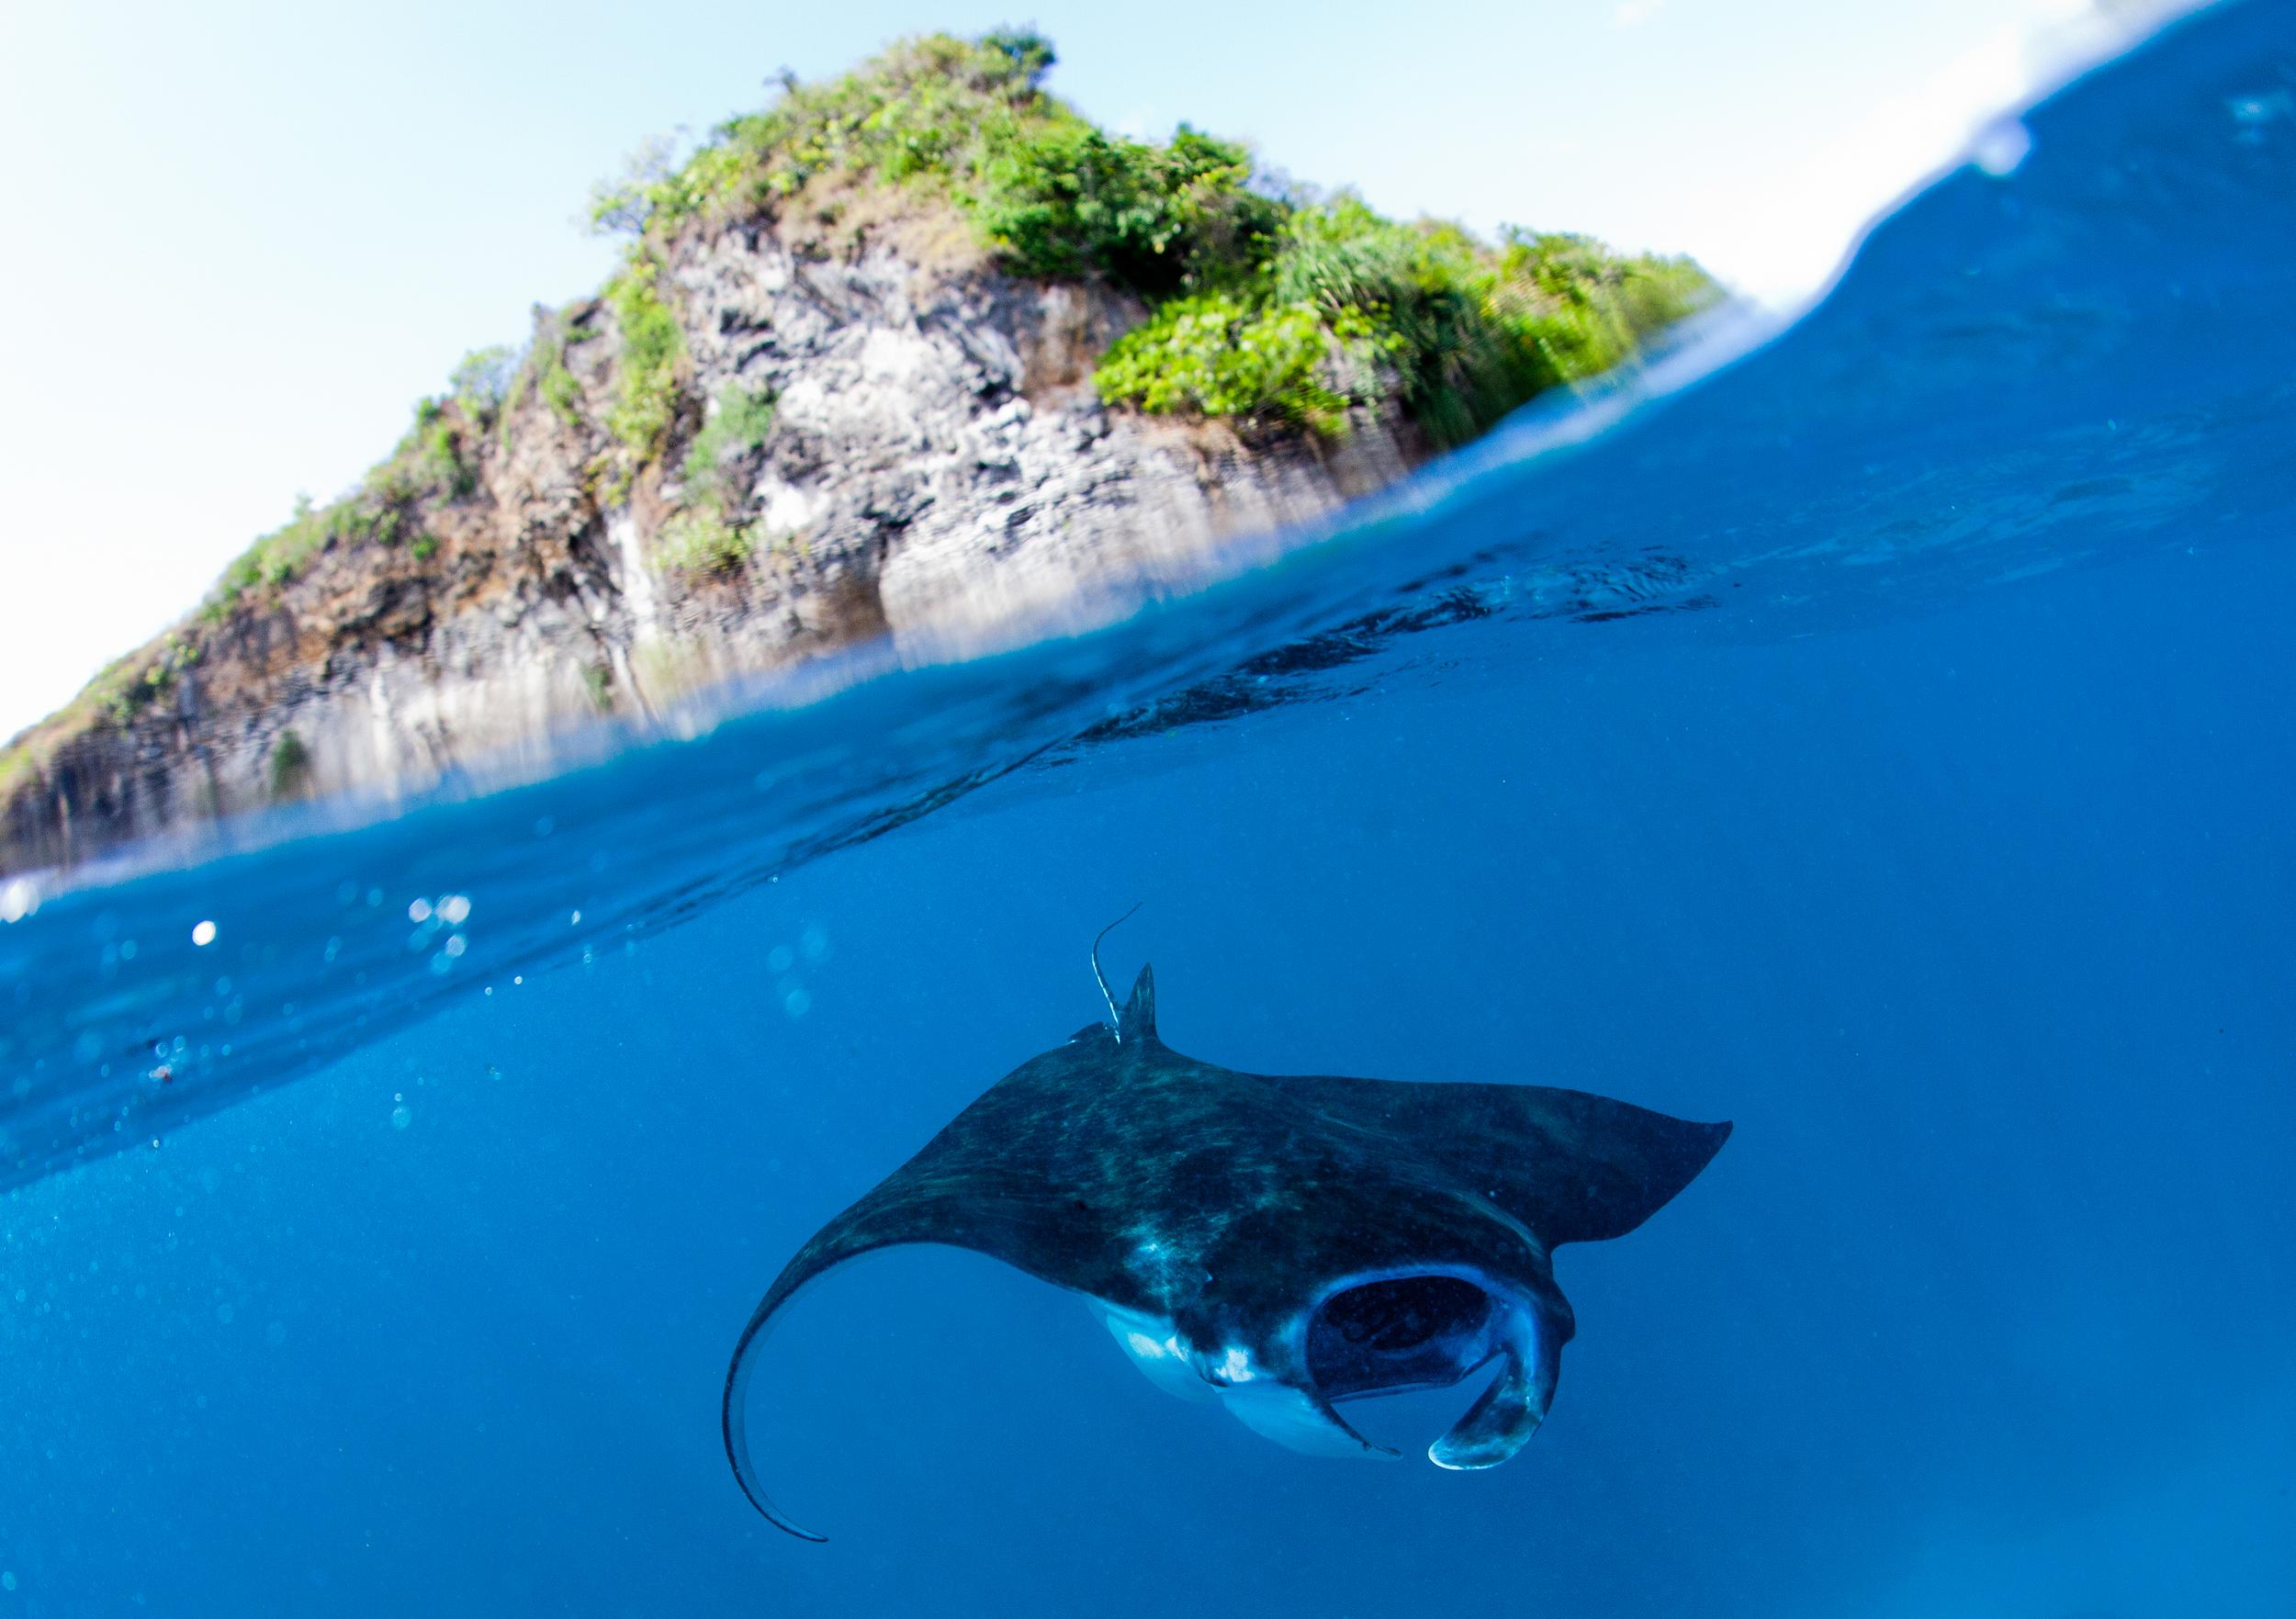 manta ray in the water